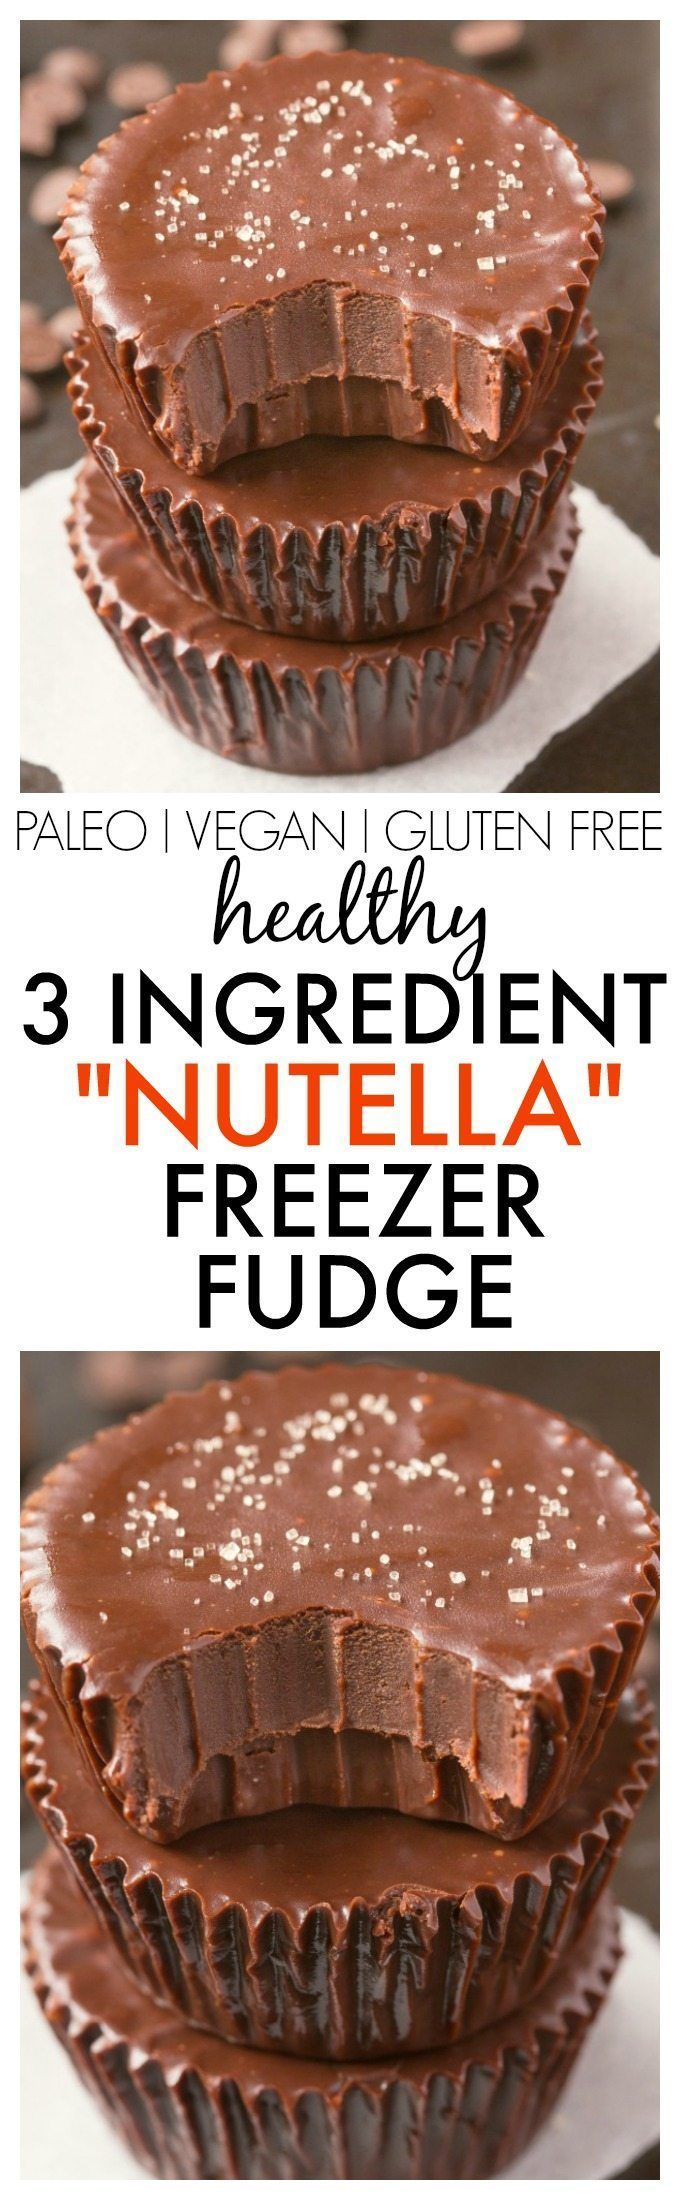 Healthy 3 Ingredient 'Nutella' Fudge Cups- Smooth, creamy and melt-in-your mouth fudge which takes minutes and has NO dairy, refined sugar or butter but you'd never tell- A delicious snack or dessert! {vegan, gluten free, paleo recipe}